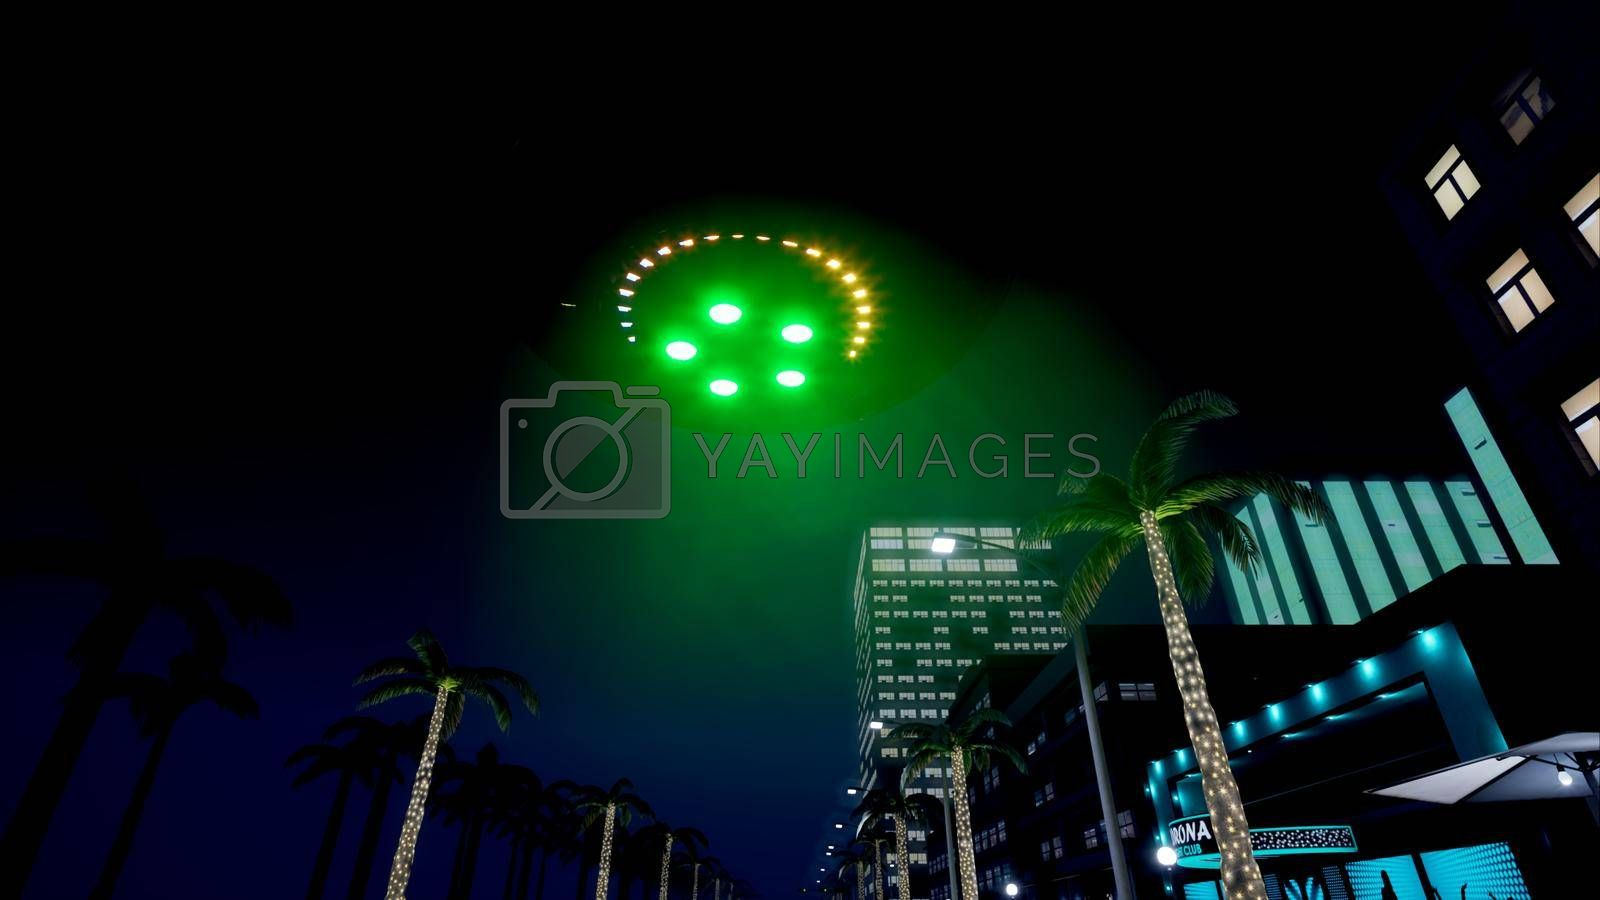 UFO is flying over the night city